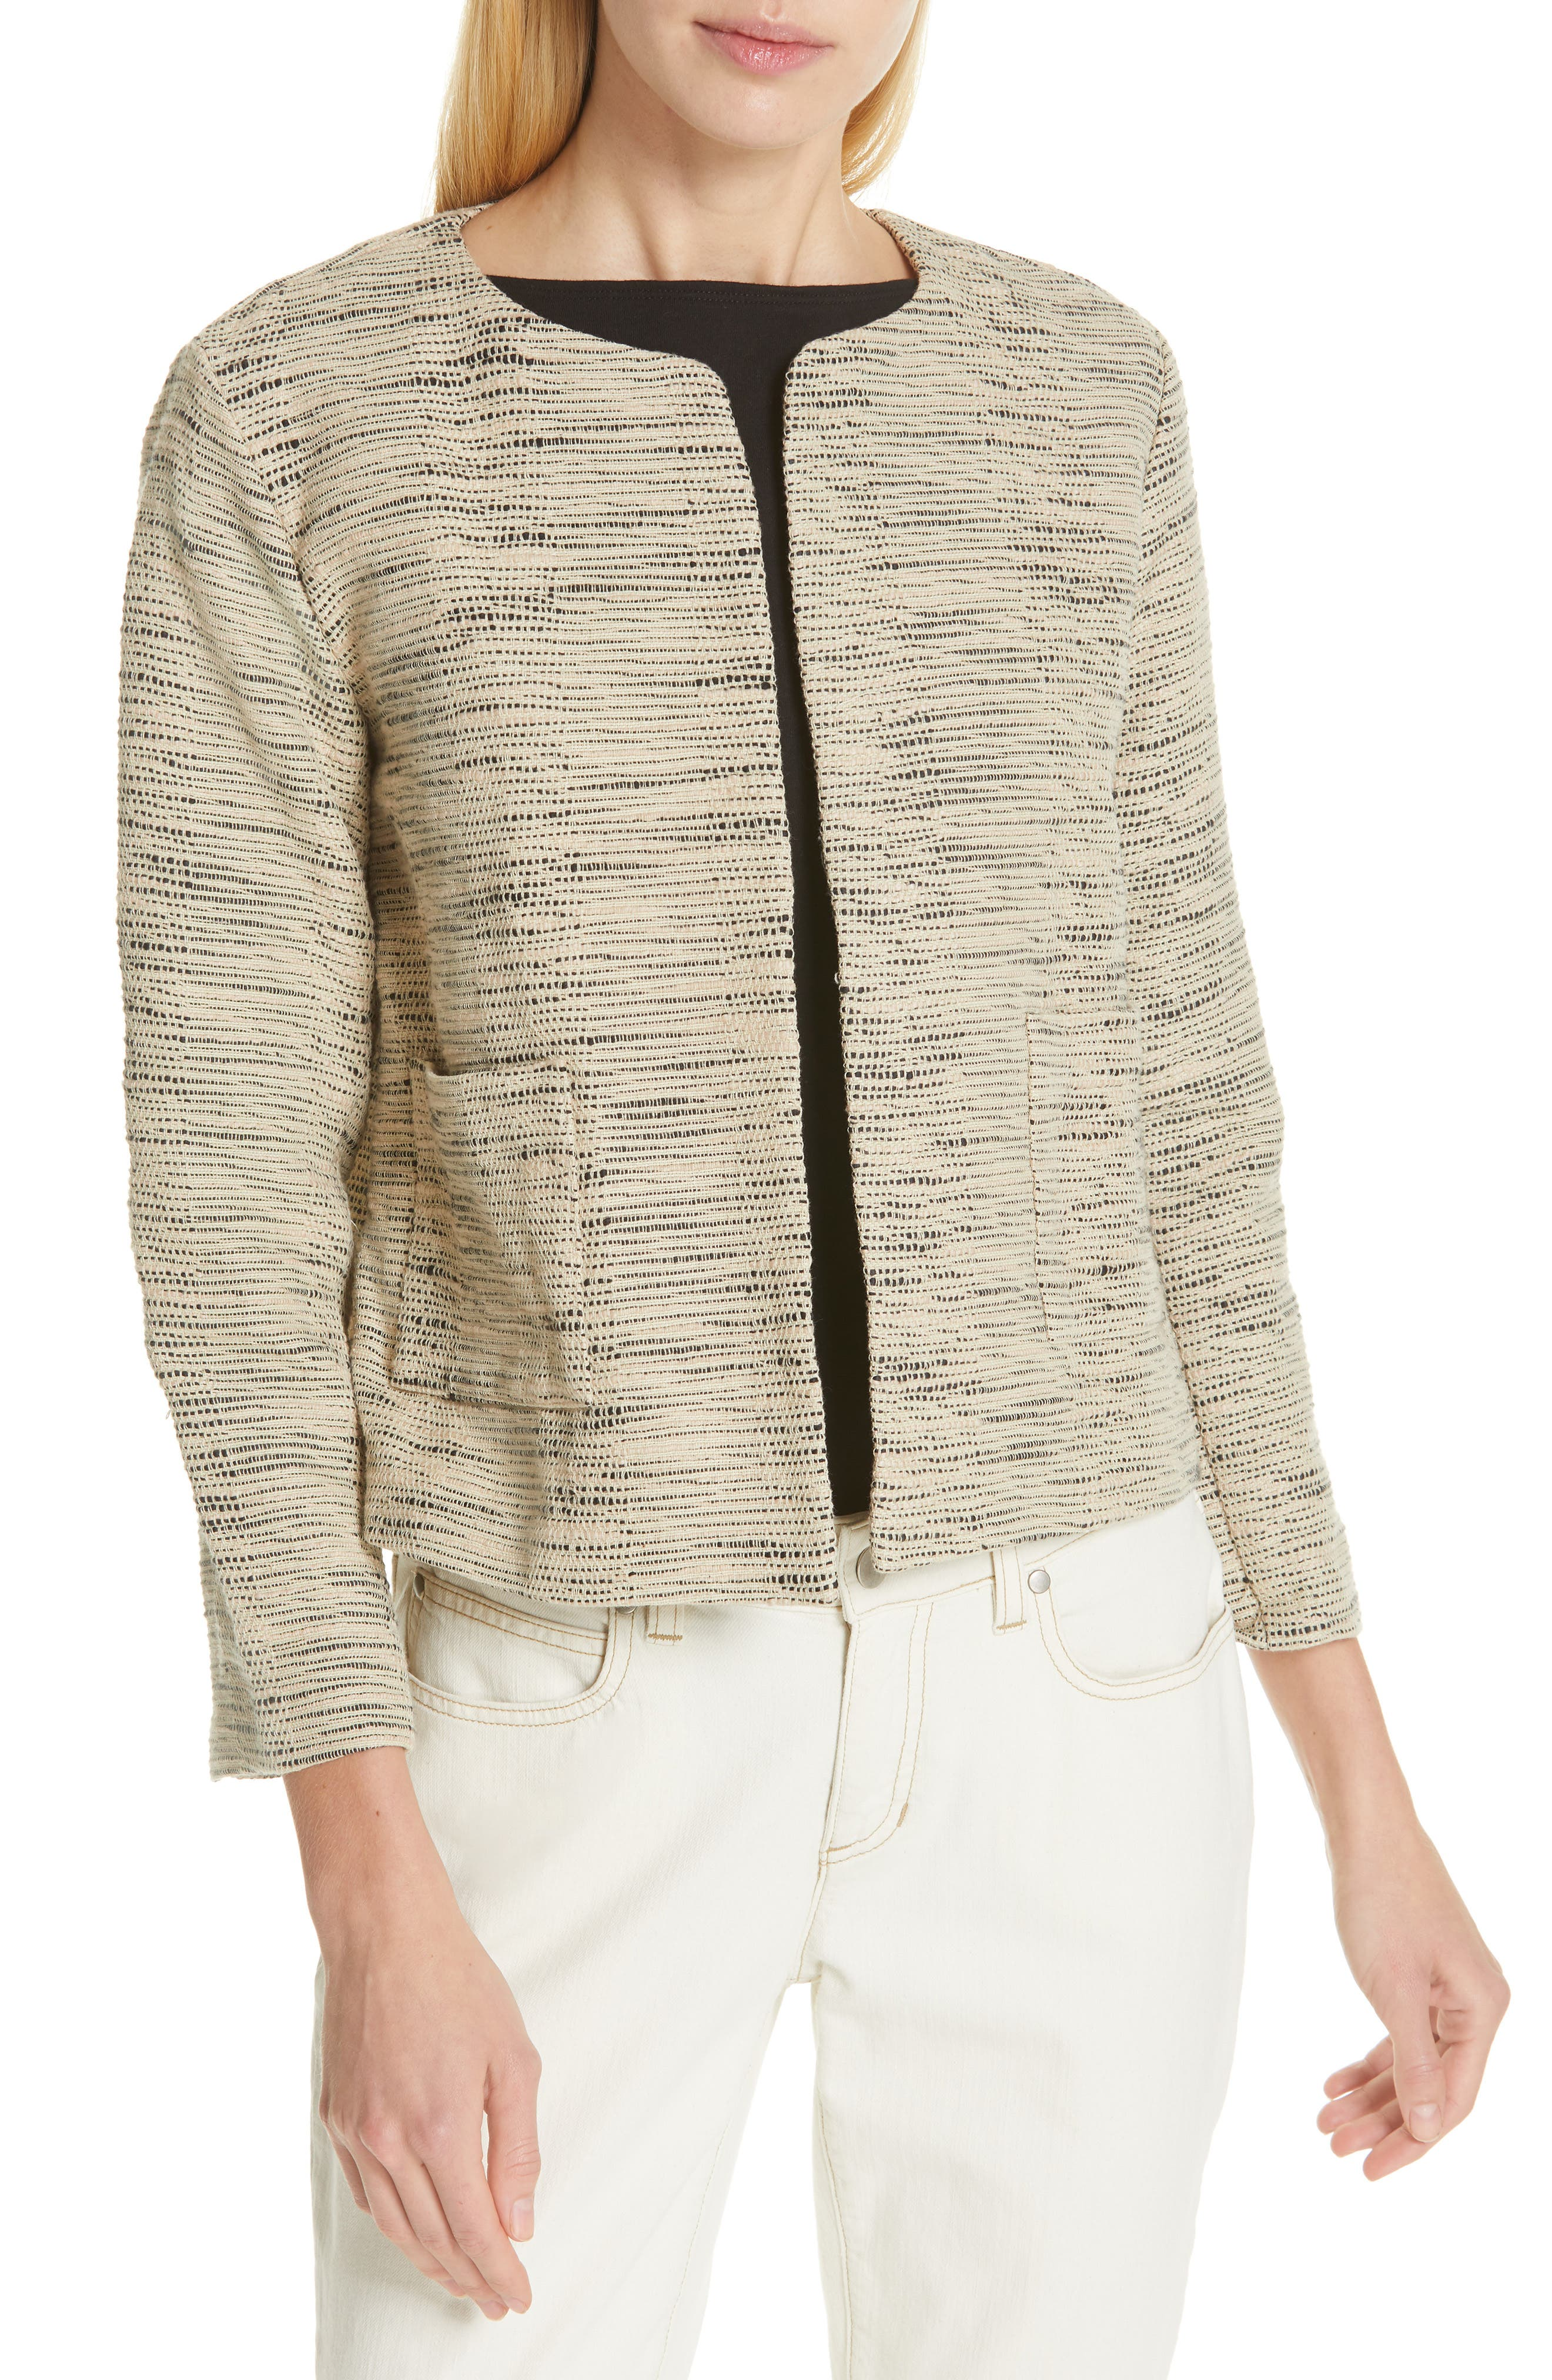 EILEEN FISHER, Woven Cotton Jacket, Main thumbnail 1, color, NATURAL